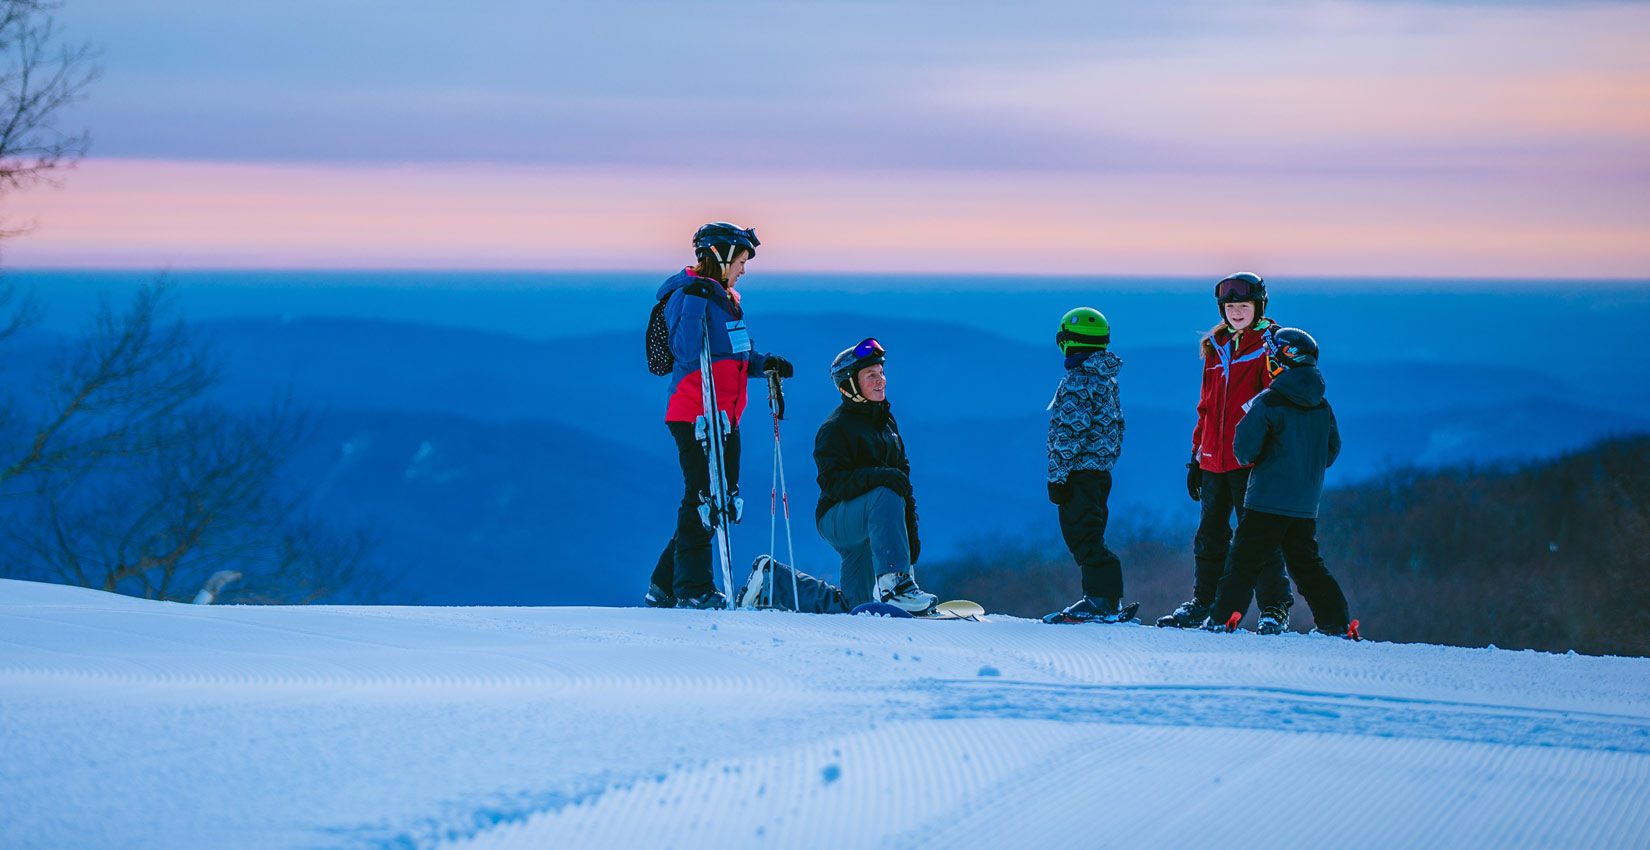 family ski vacation in the blue ridge mountains at wintergreen resort